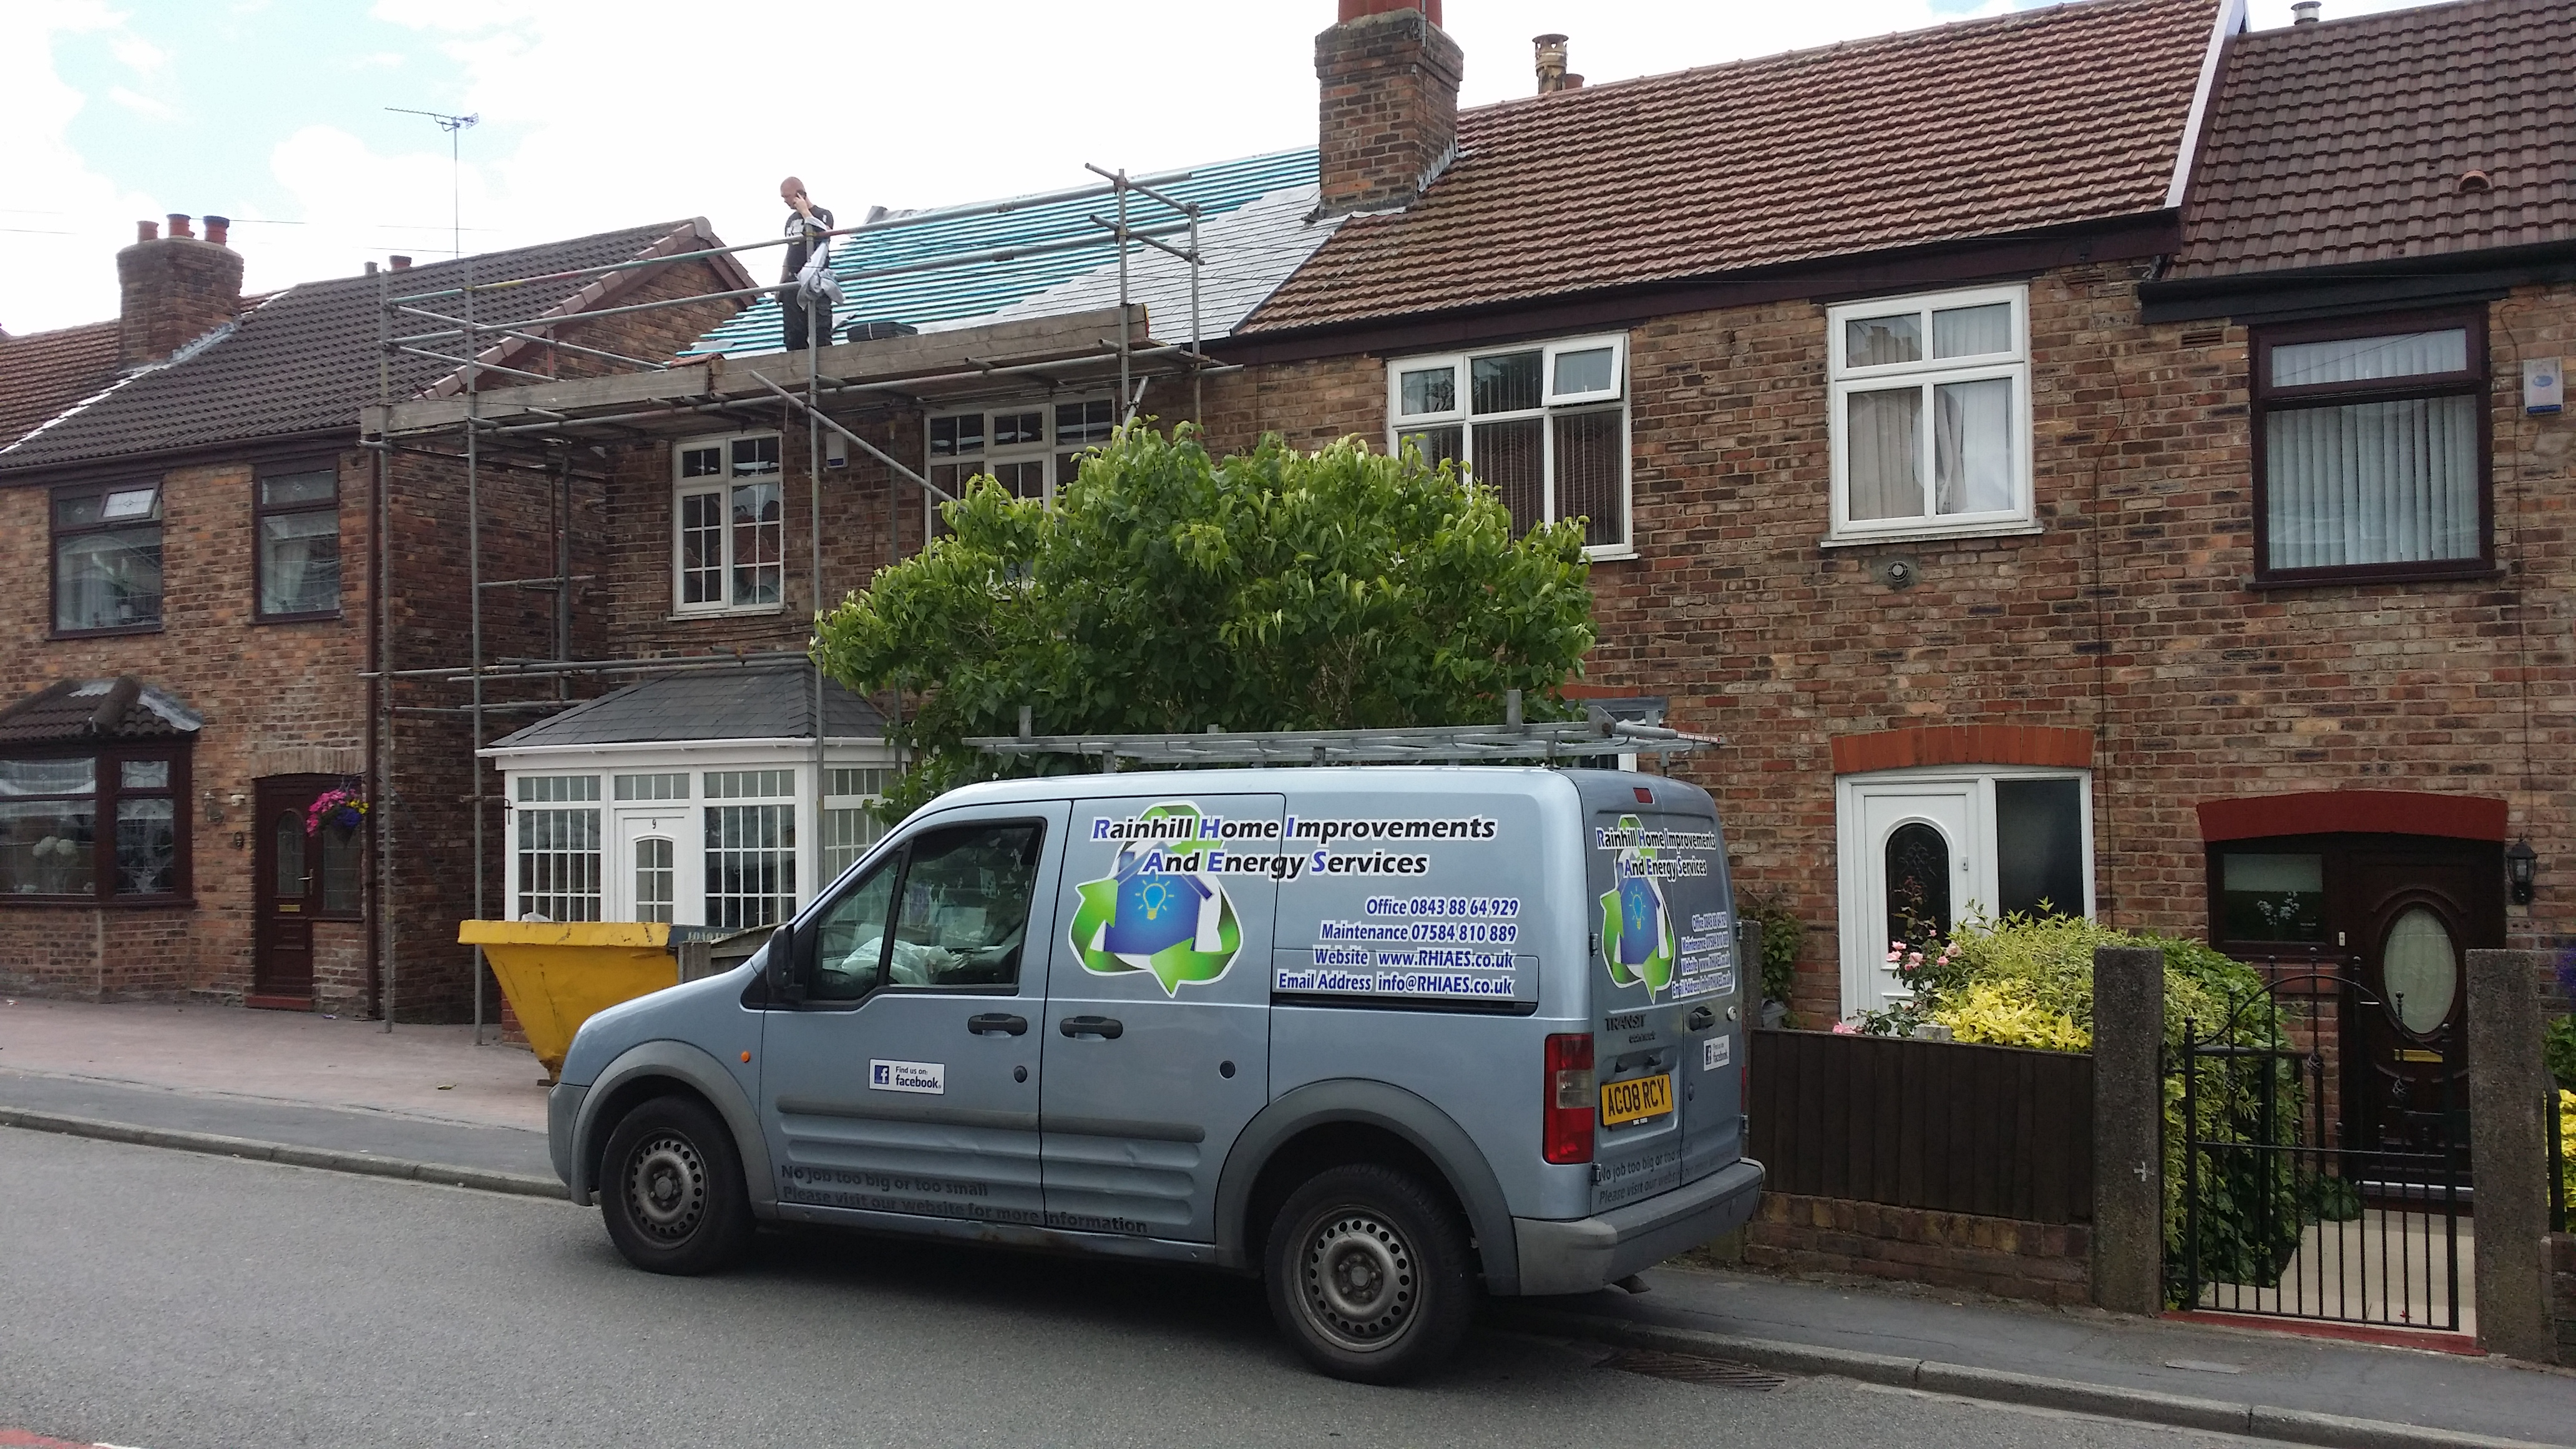 Rainhill Home Improvements and Energy Services also do residential property maintenance